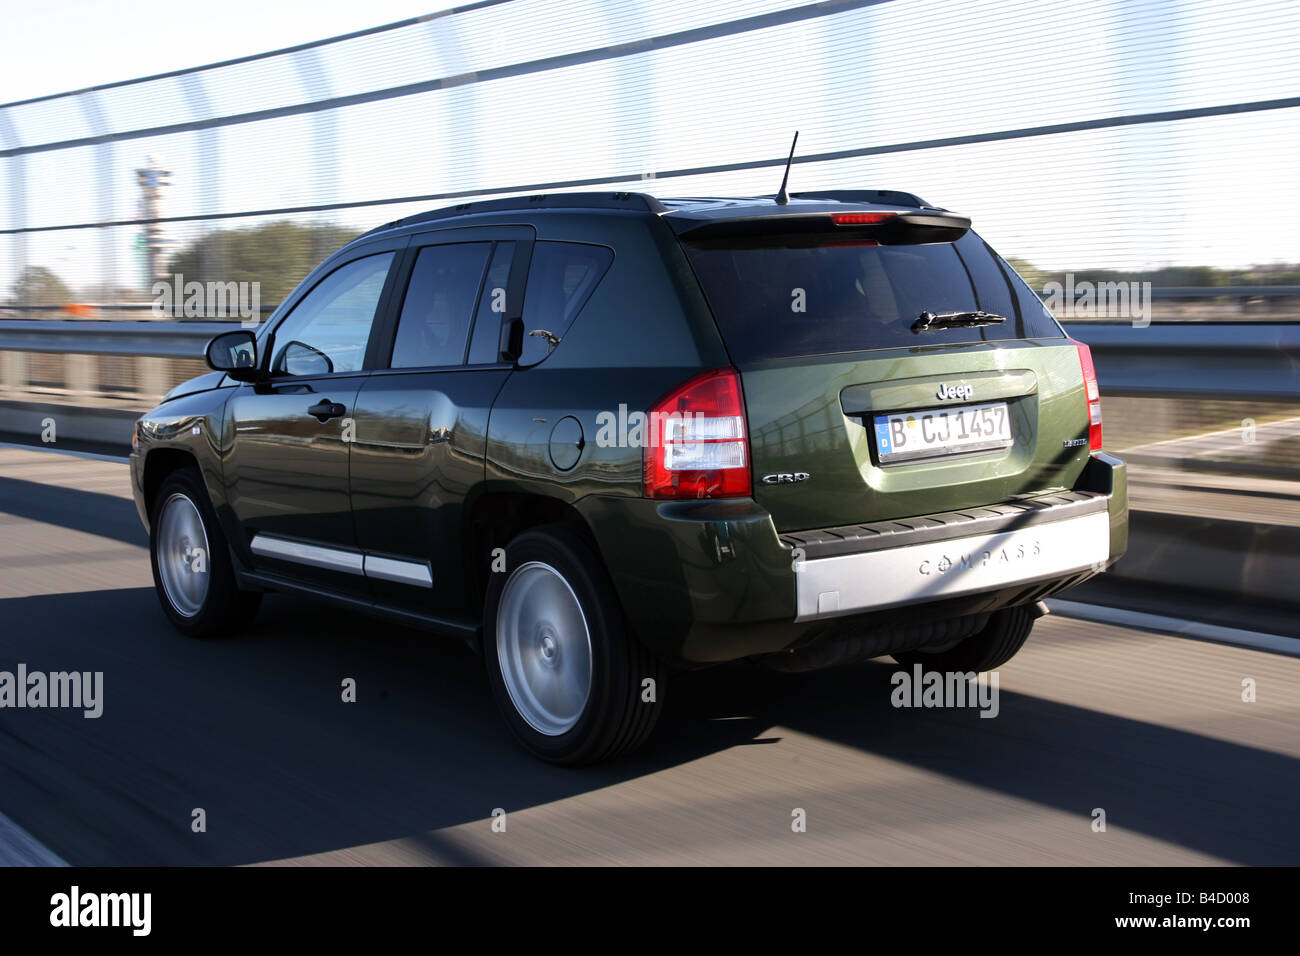 Jeep Compass 2.0 CRD Limited, model year 2007-, green, driving, diagonal from the back, rear view, country road - Stock Image